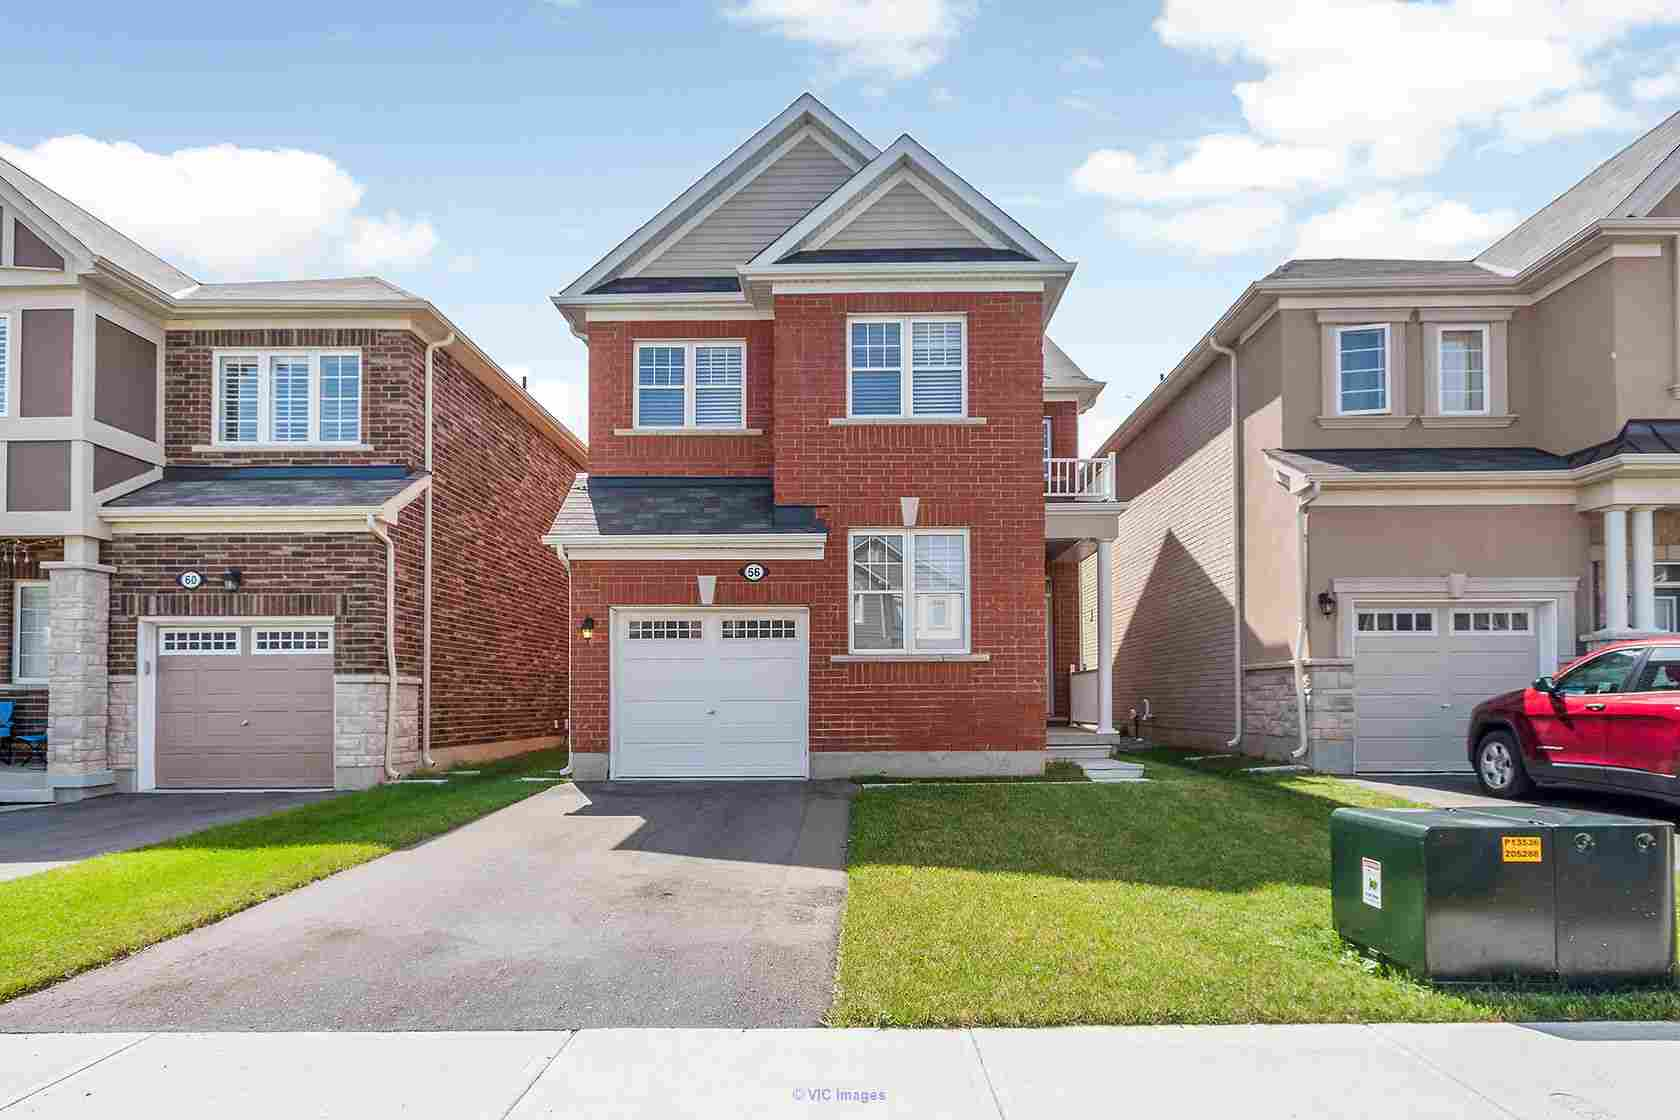 4 Bedroom Detach Home for Sale in Waterdown, Hamilton